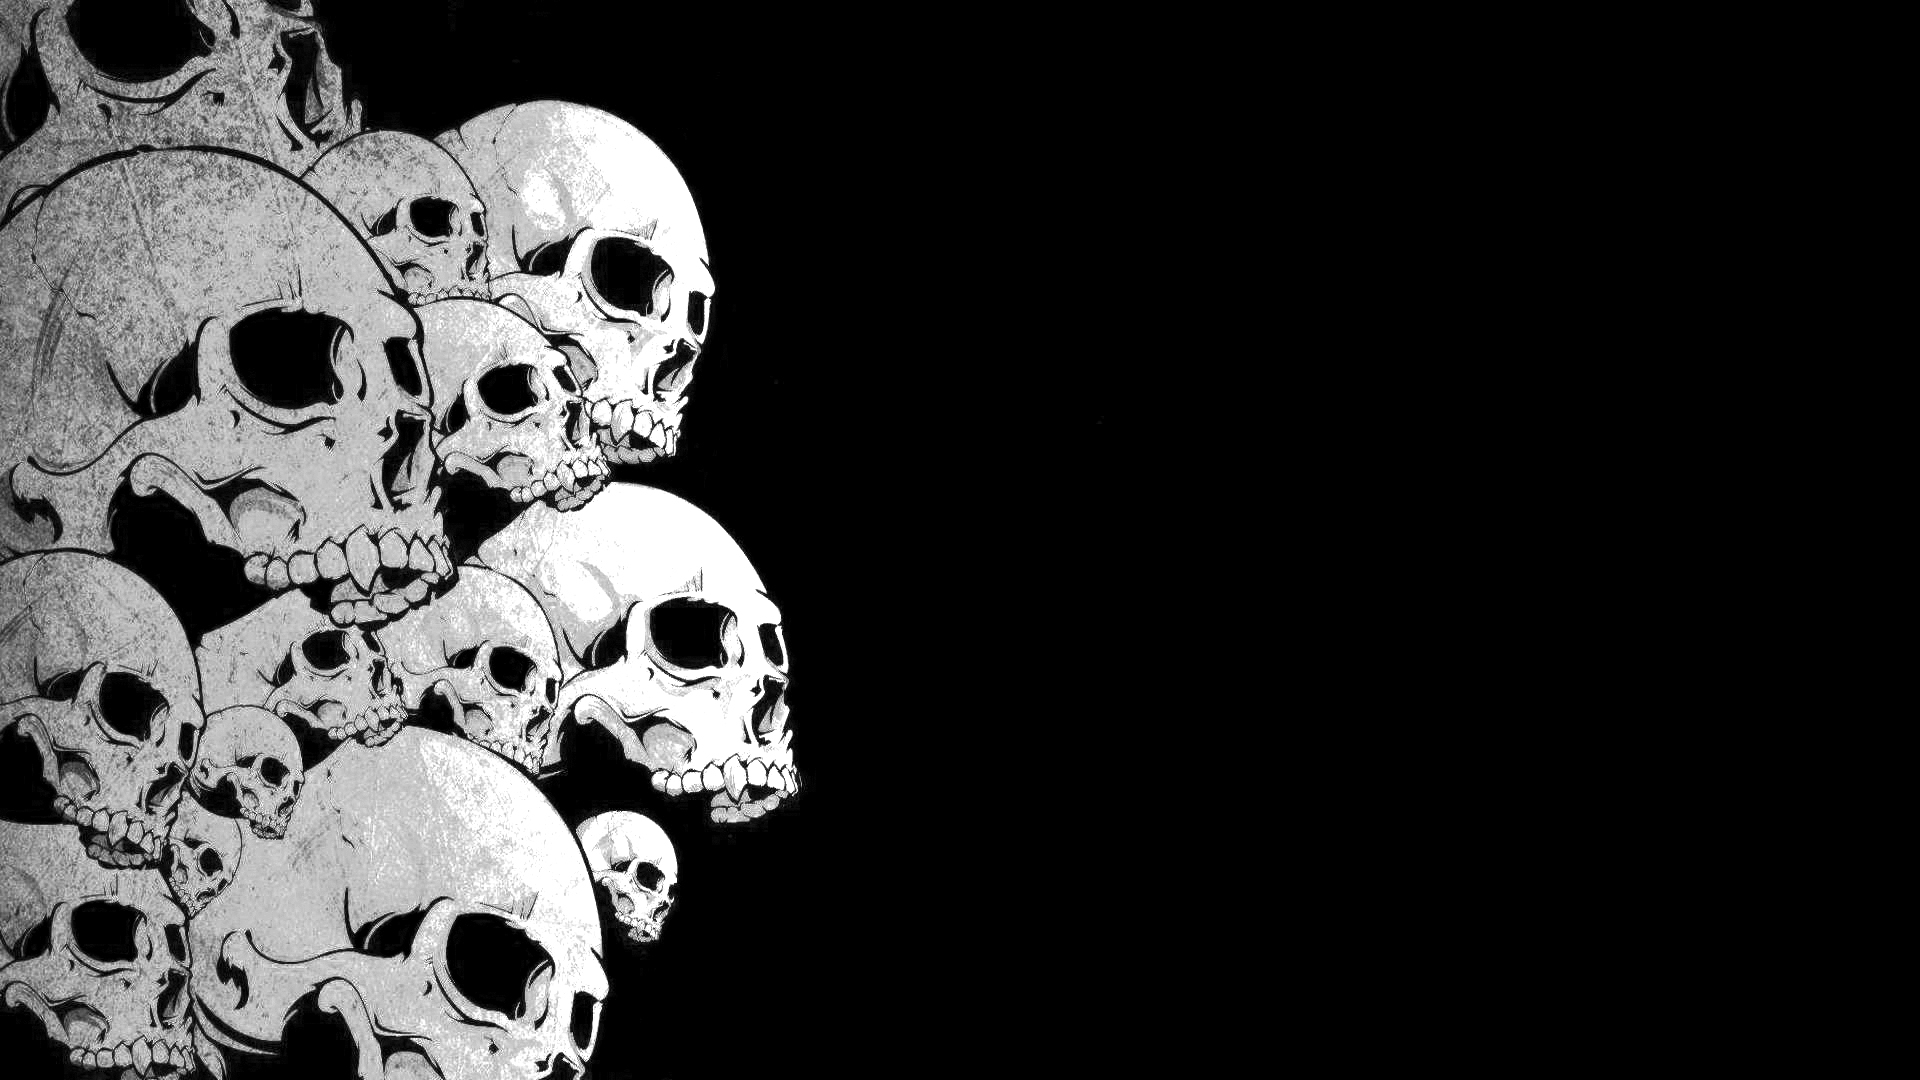 Popular Wallpaper High Resolution Skull - skull-black-wallpapers_044858259  Pictures_429177.jpg